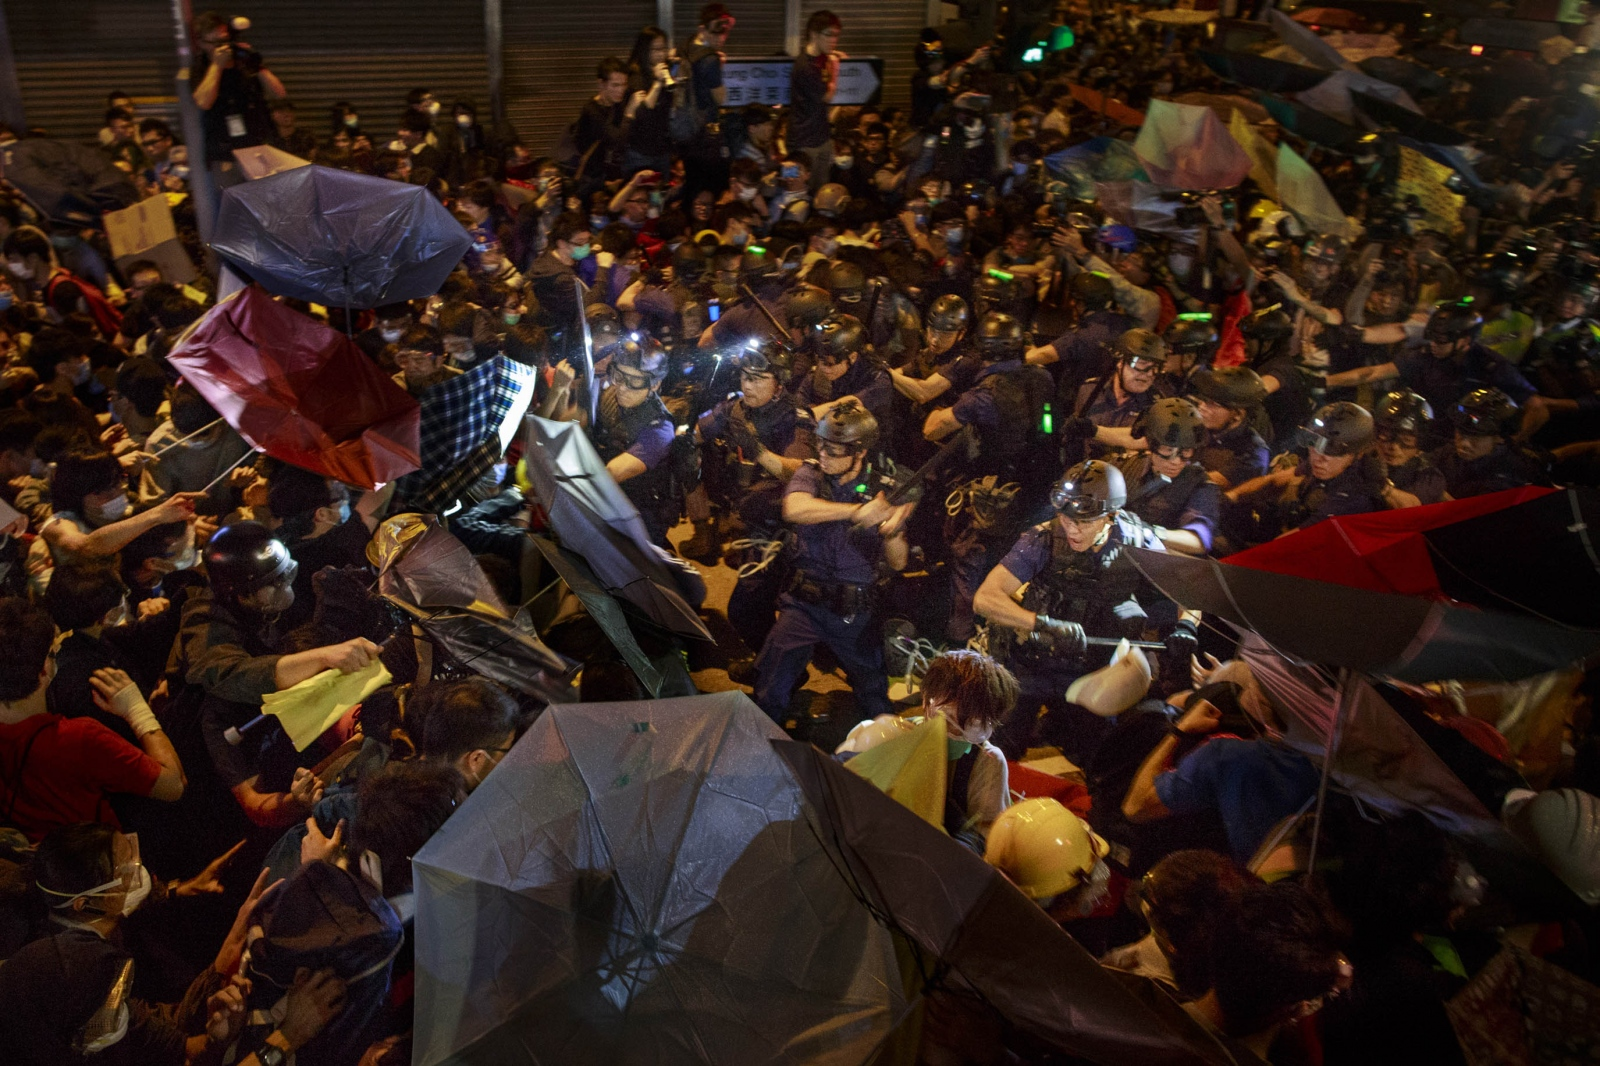 Protesters clash with the police during a night of confrontation in the Mong Kok district of Hong Kong, on November 25, 2014.